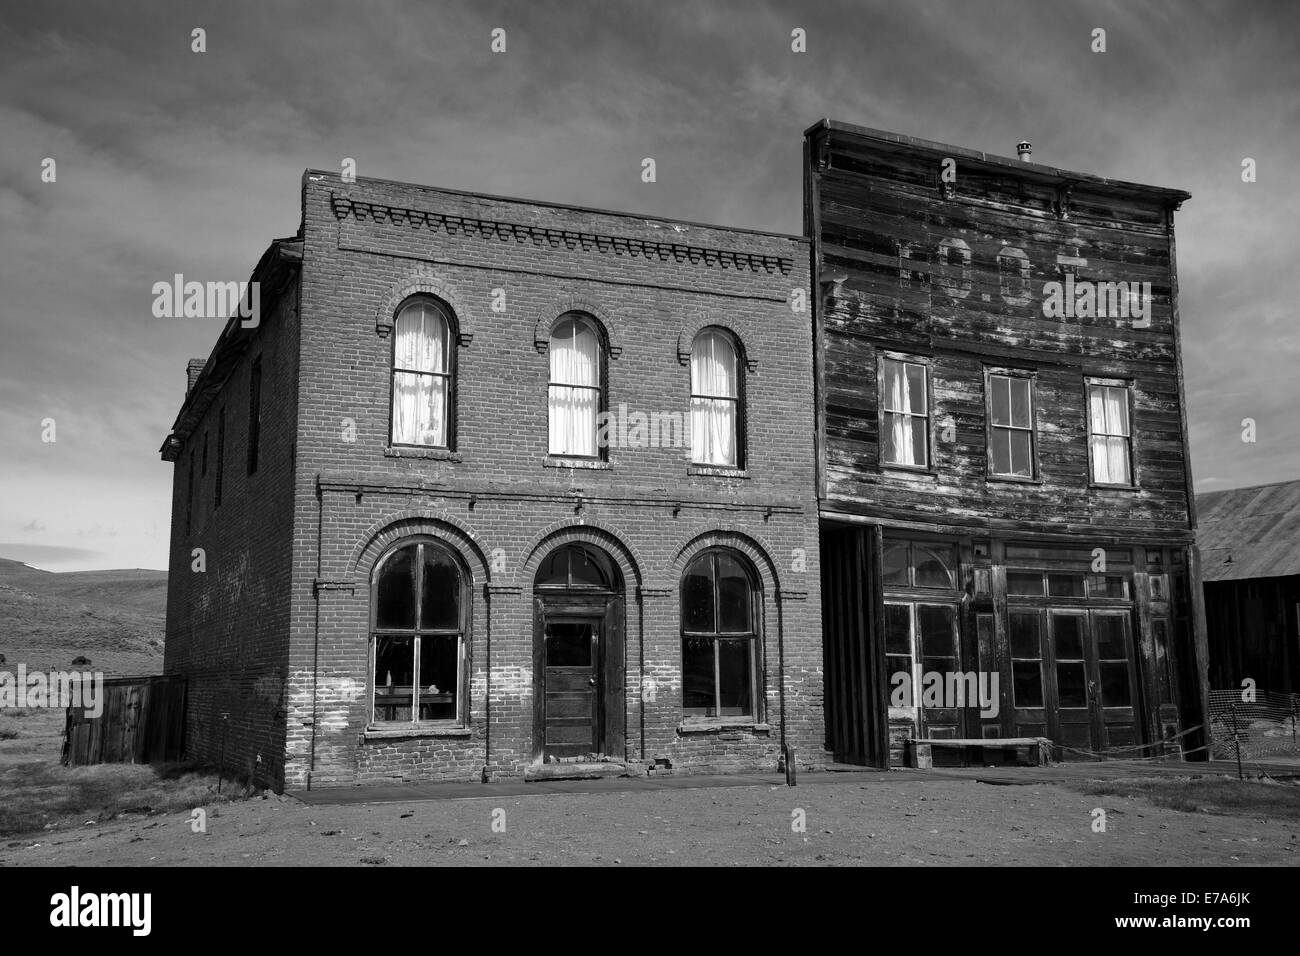 Bodie Post Office and IOOF Hall, Bodie Ghost Town ( elevation 8379 ft / 2554 m ), Bodie Hills, Mono County, Eastern - Stock Image